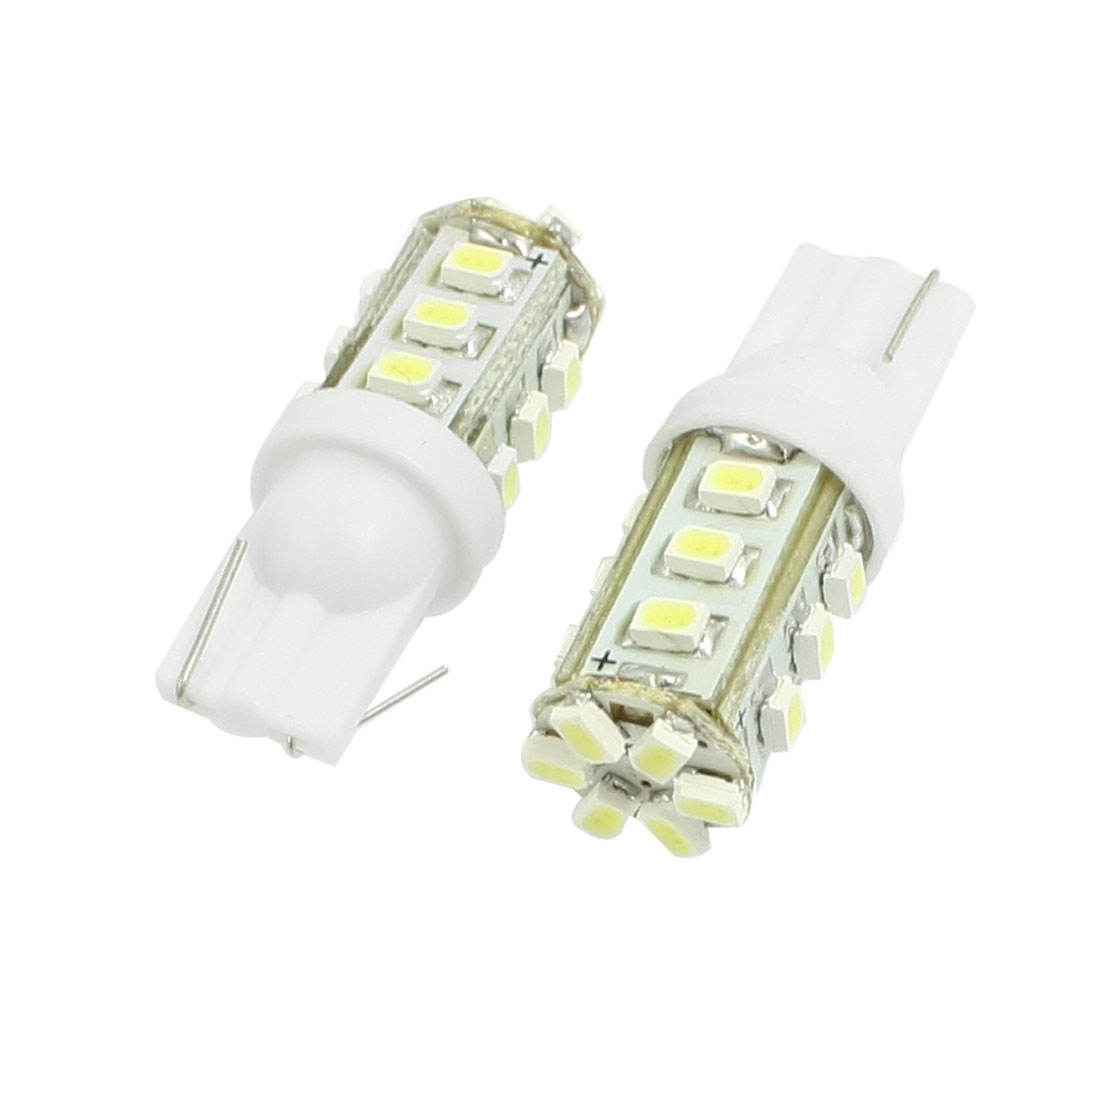 2 Pcs T10 W5W 18 SMD LED 1206 Car Vehicle Side Wedge Light Lamp White